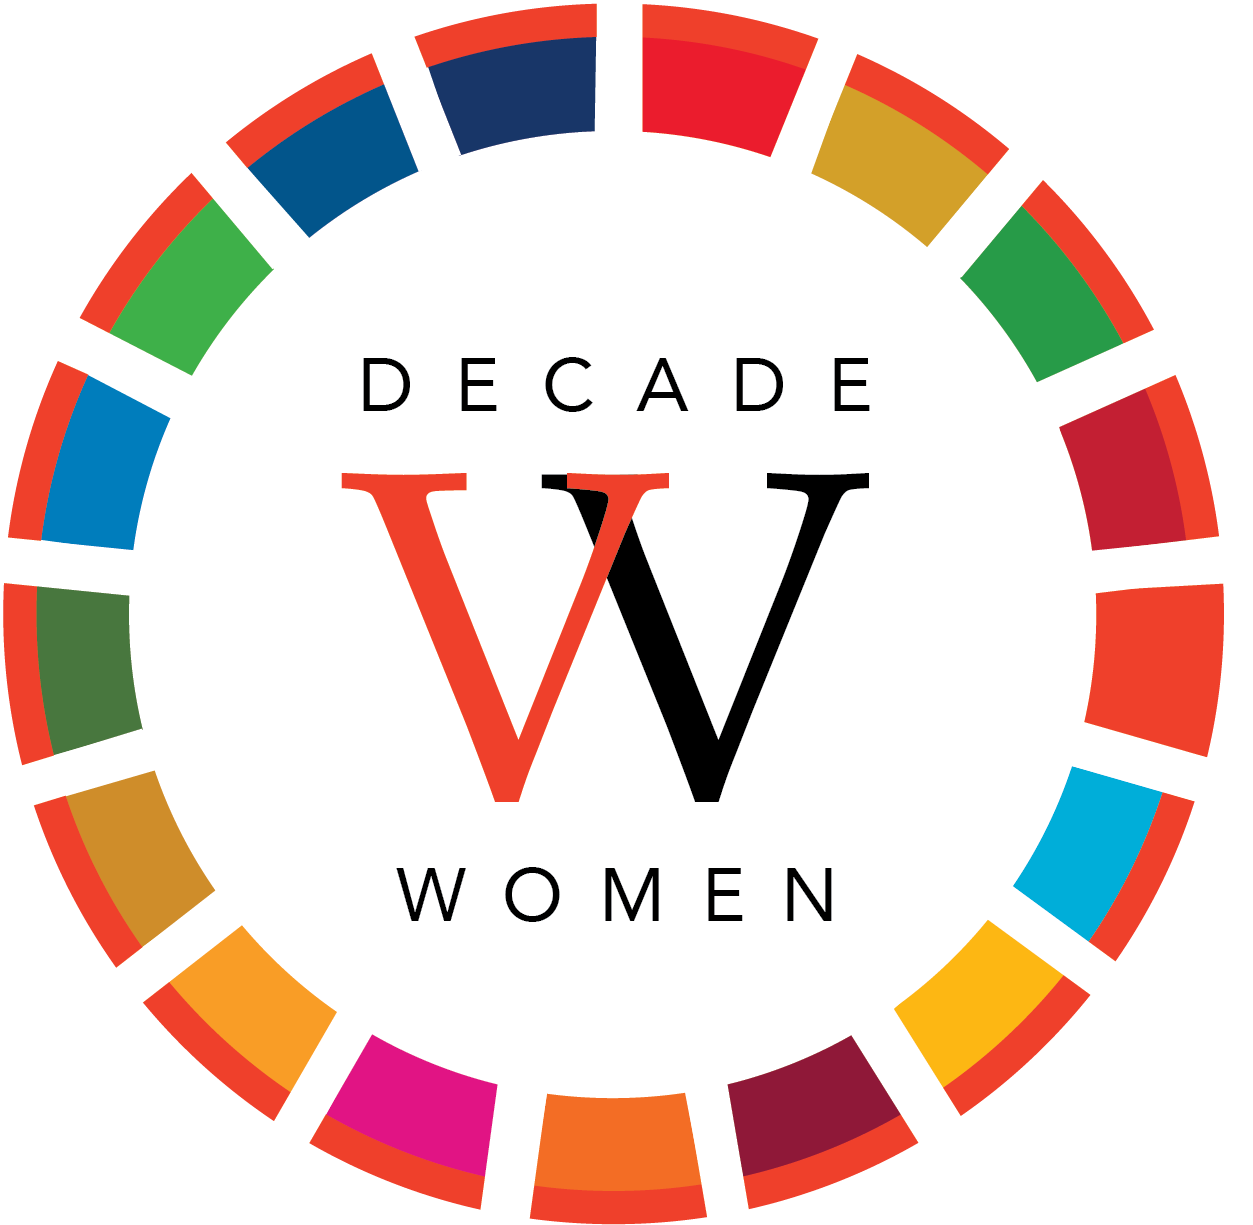 DECADE OF WOMEN ANNOUNCES YEAR-END MATCH GRANT TO BENEFIT YEZIDI WOMEN AND GIRLS